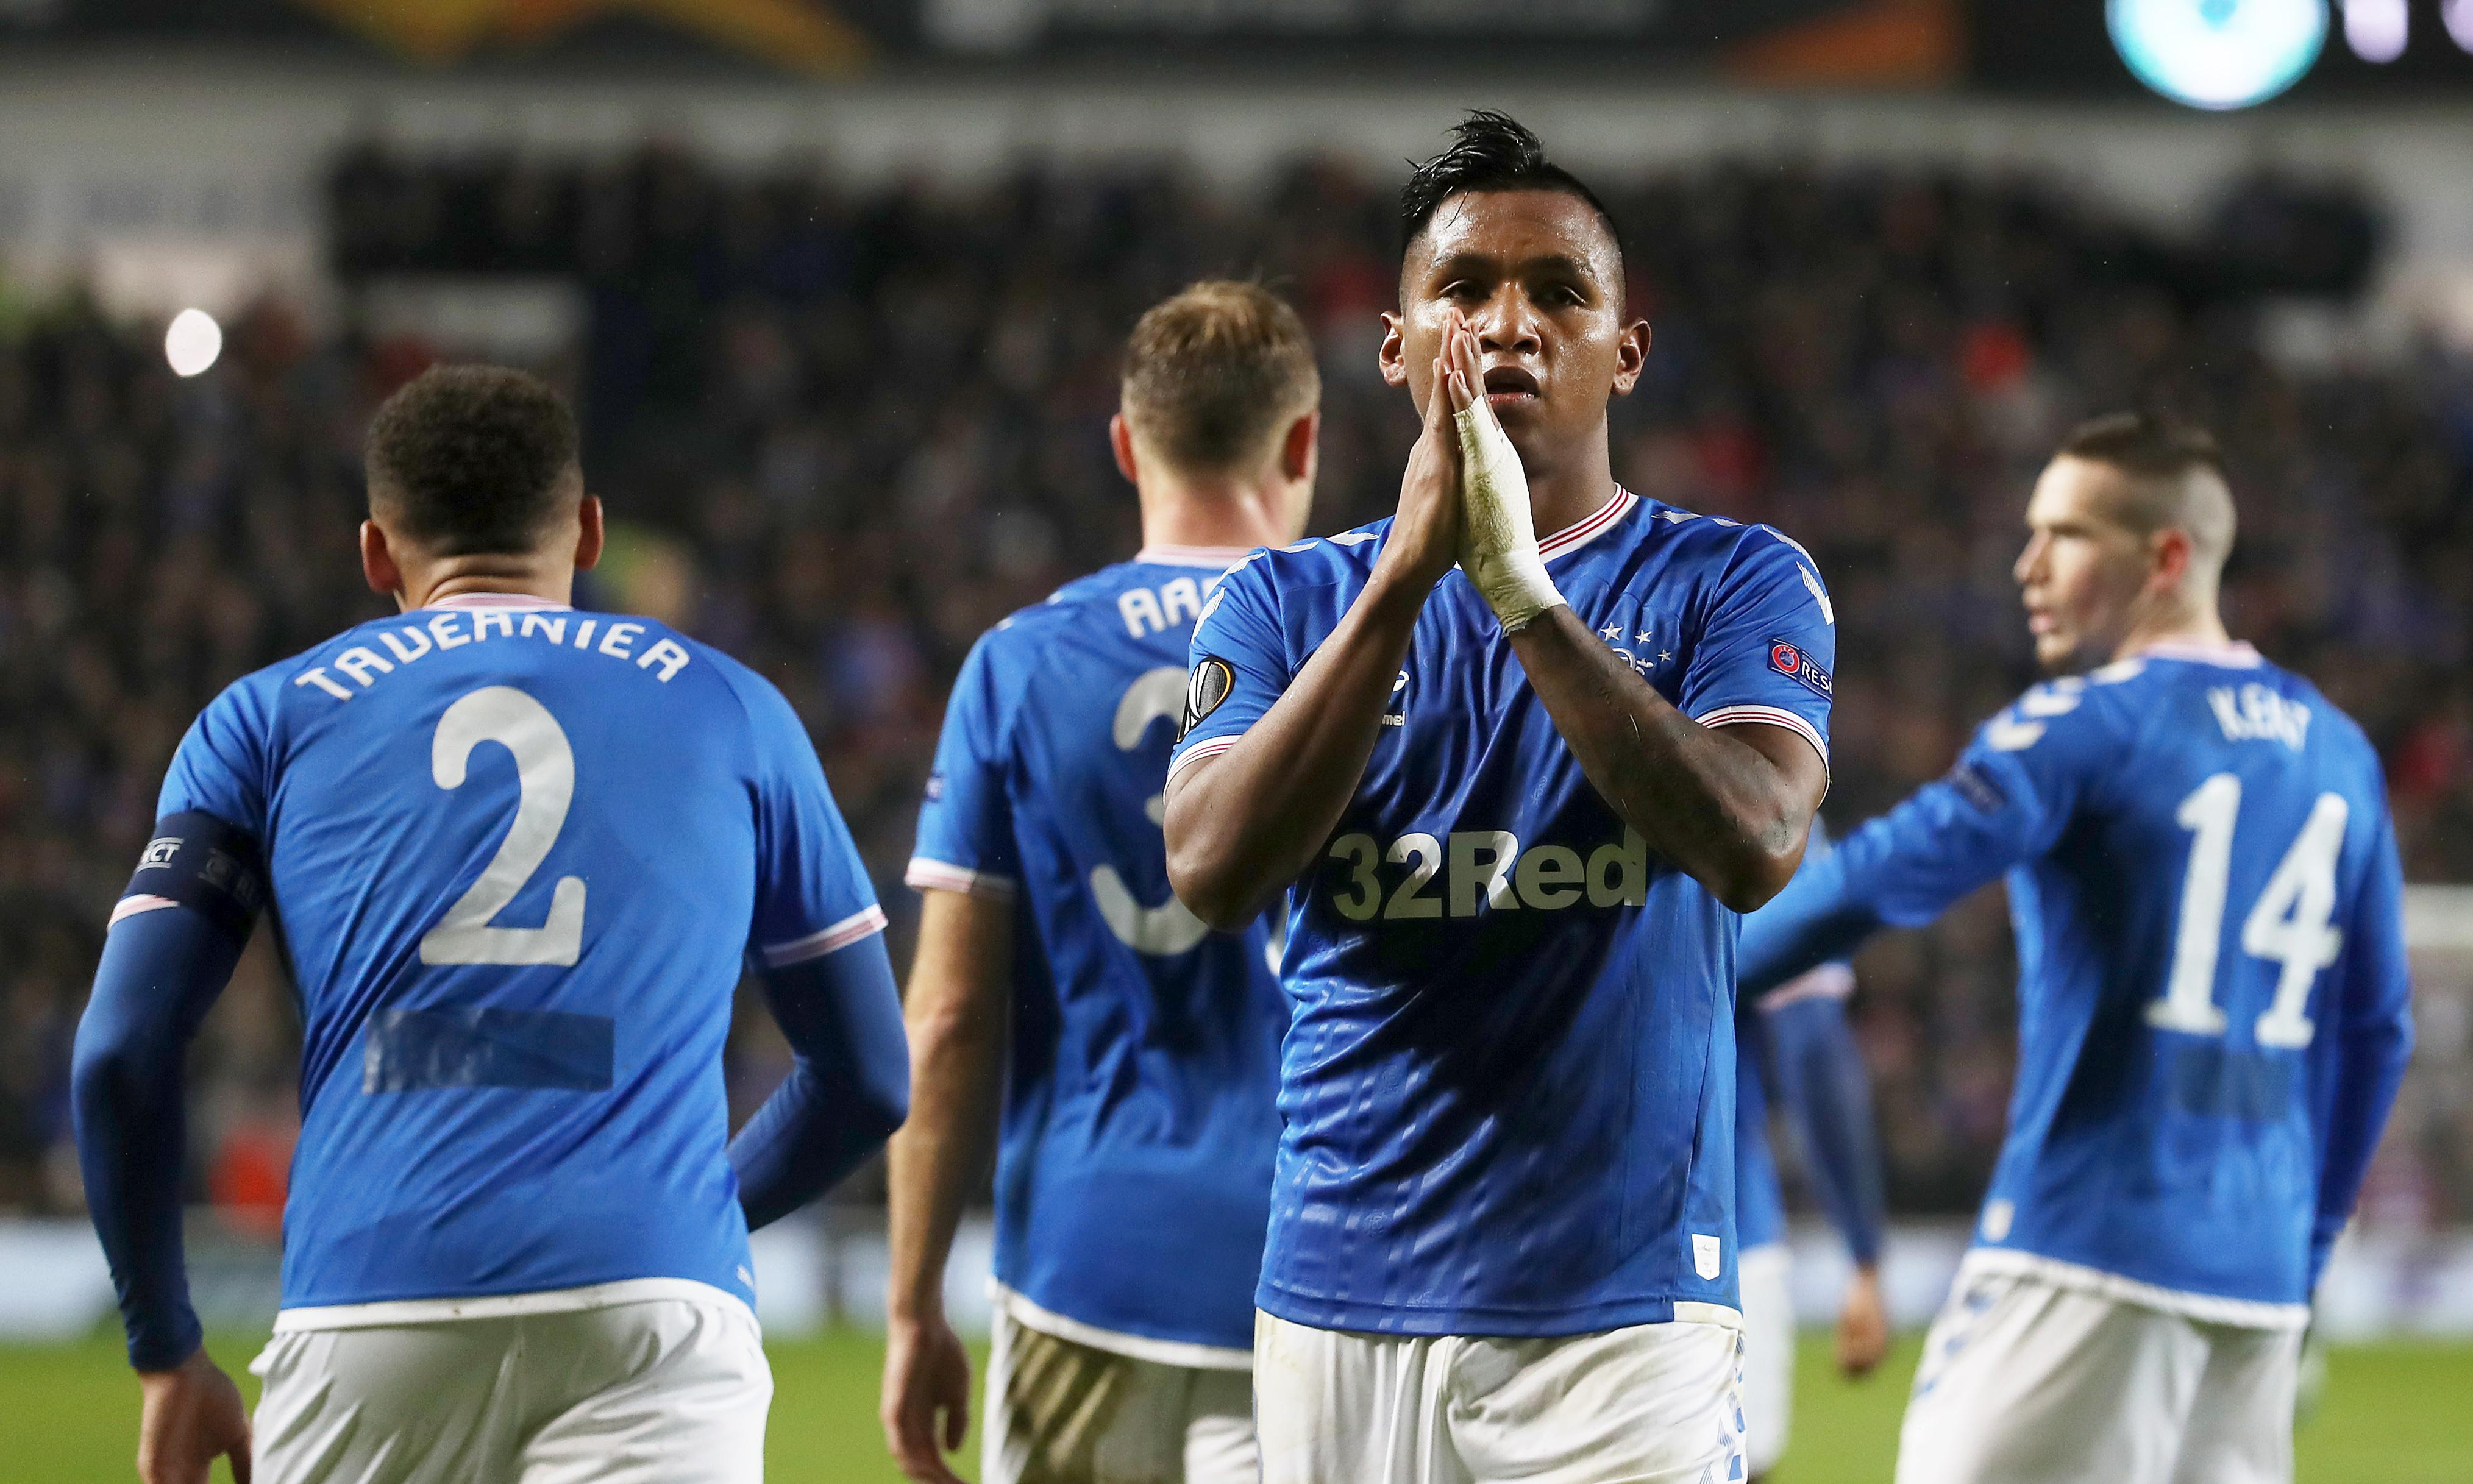 Gerrard praises 'magnificent' effort as Rangers seal Europa progress with draw